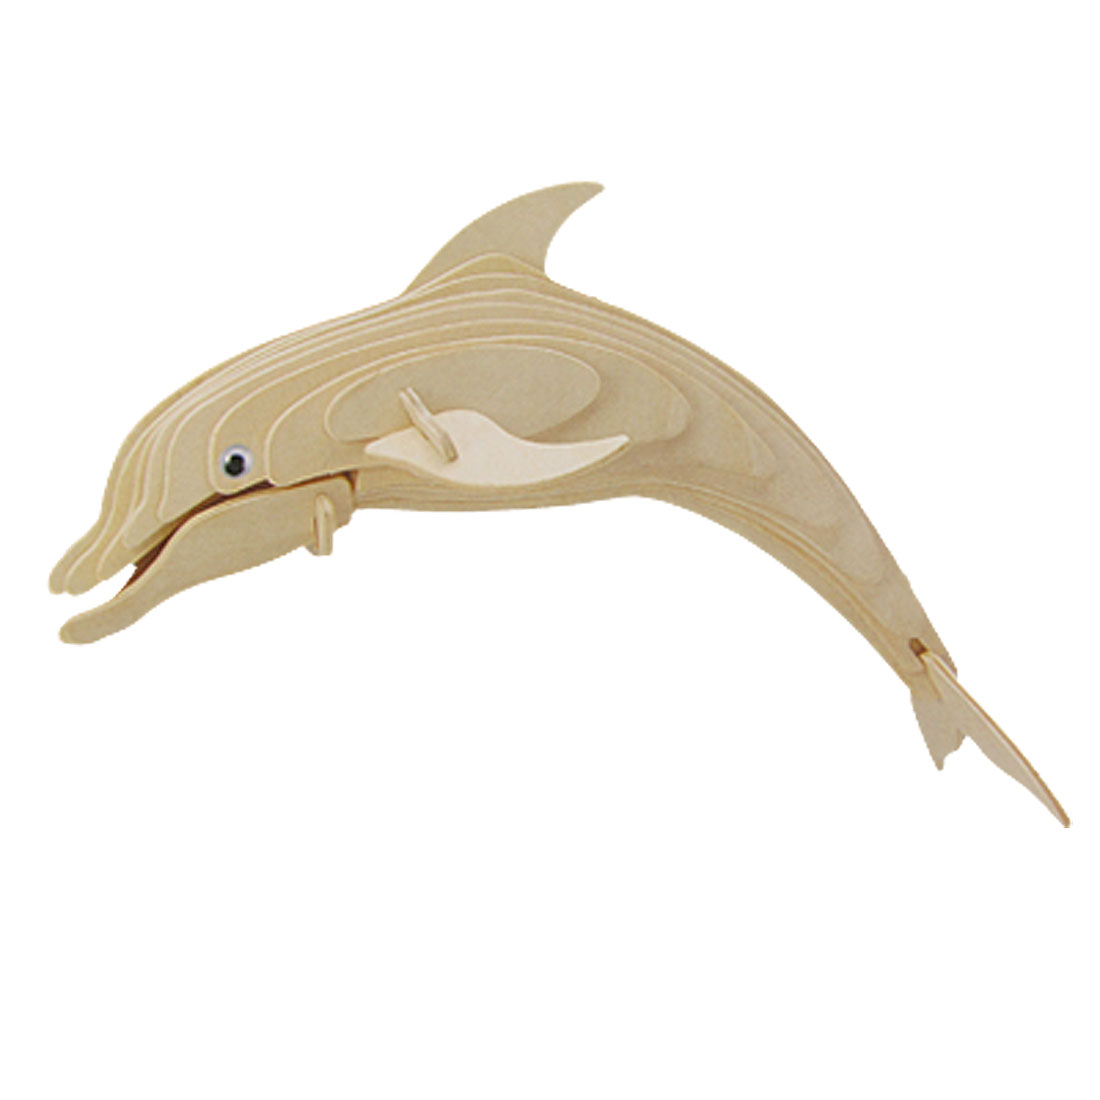 Woodcraft 3D Wooden DIY Dolphin Construction Kit Puzzle Toy